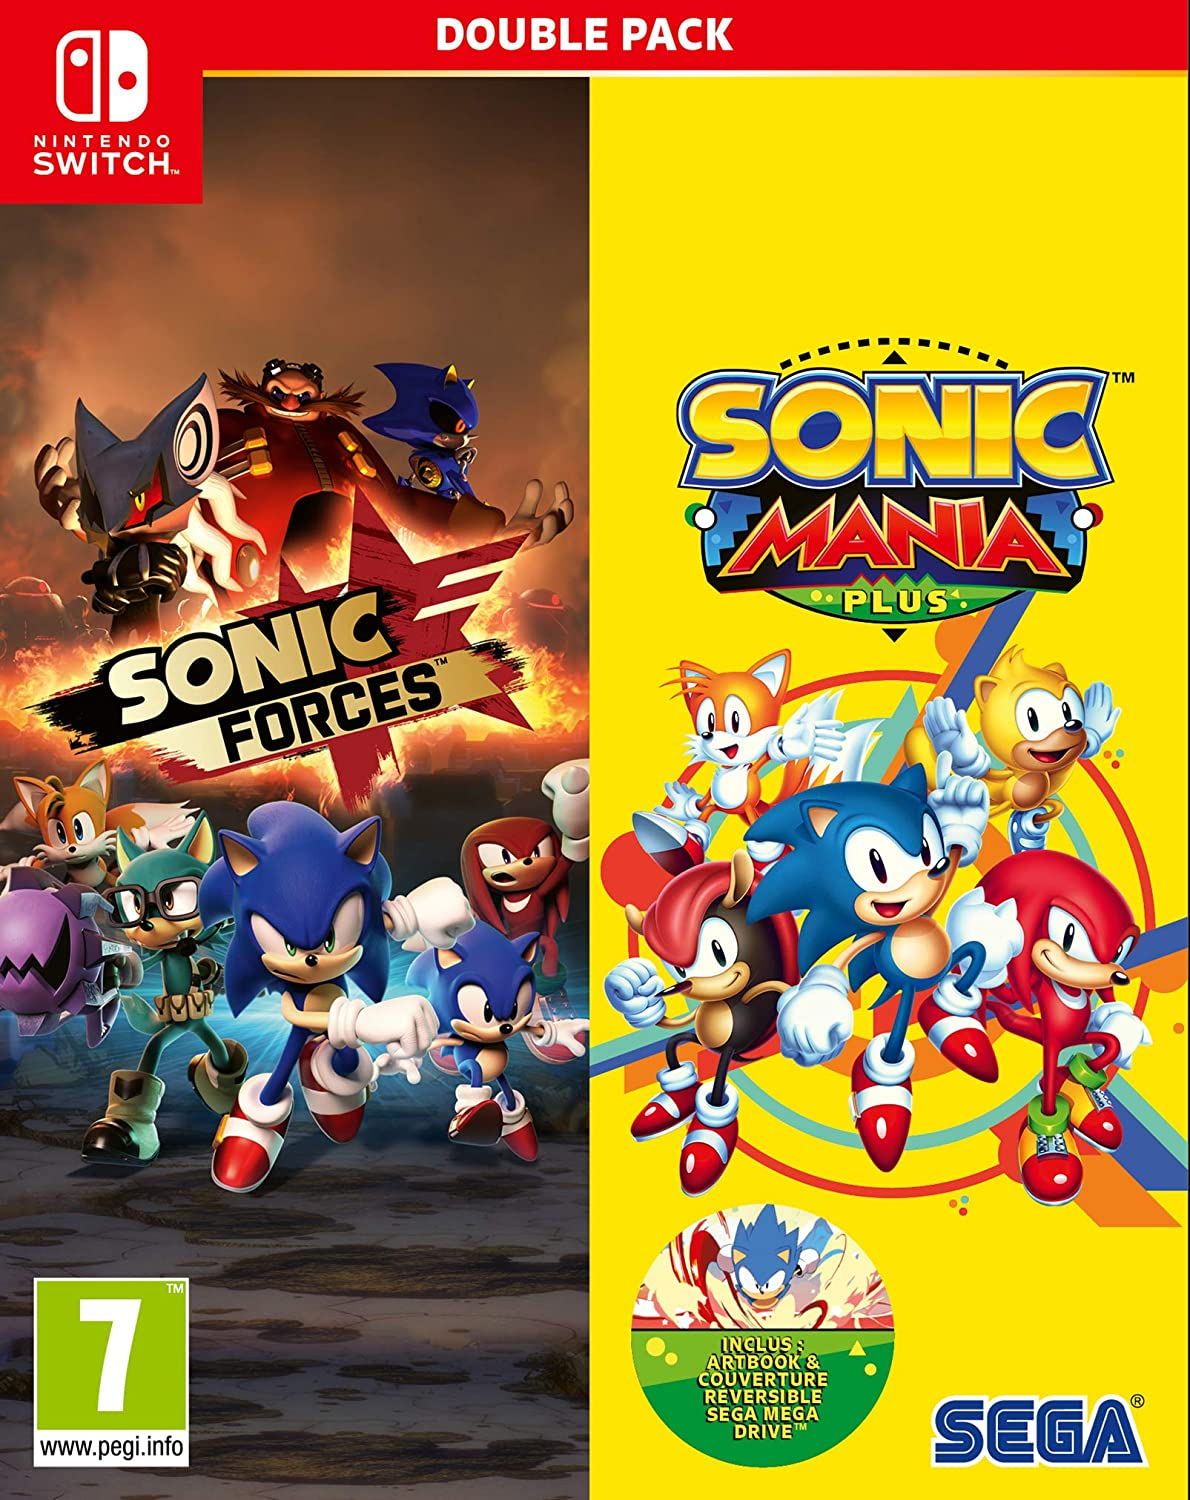 SONIC Double Pack Switch: Amazon.es: Videojuegos